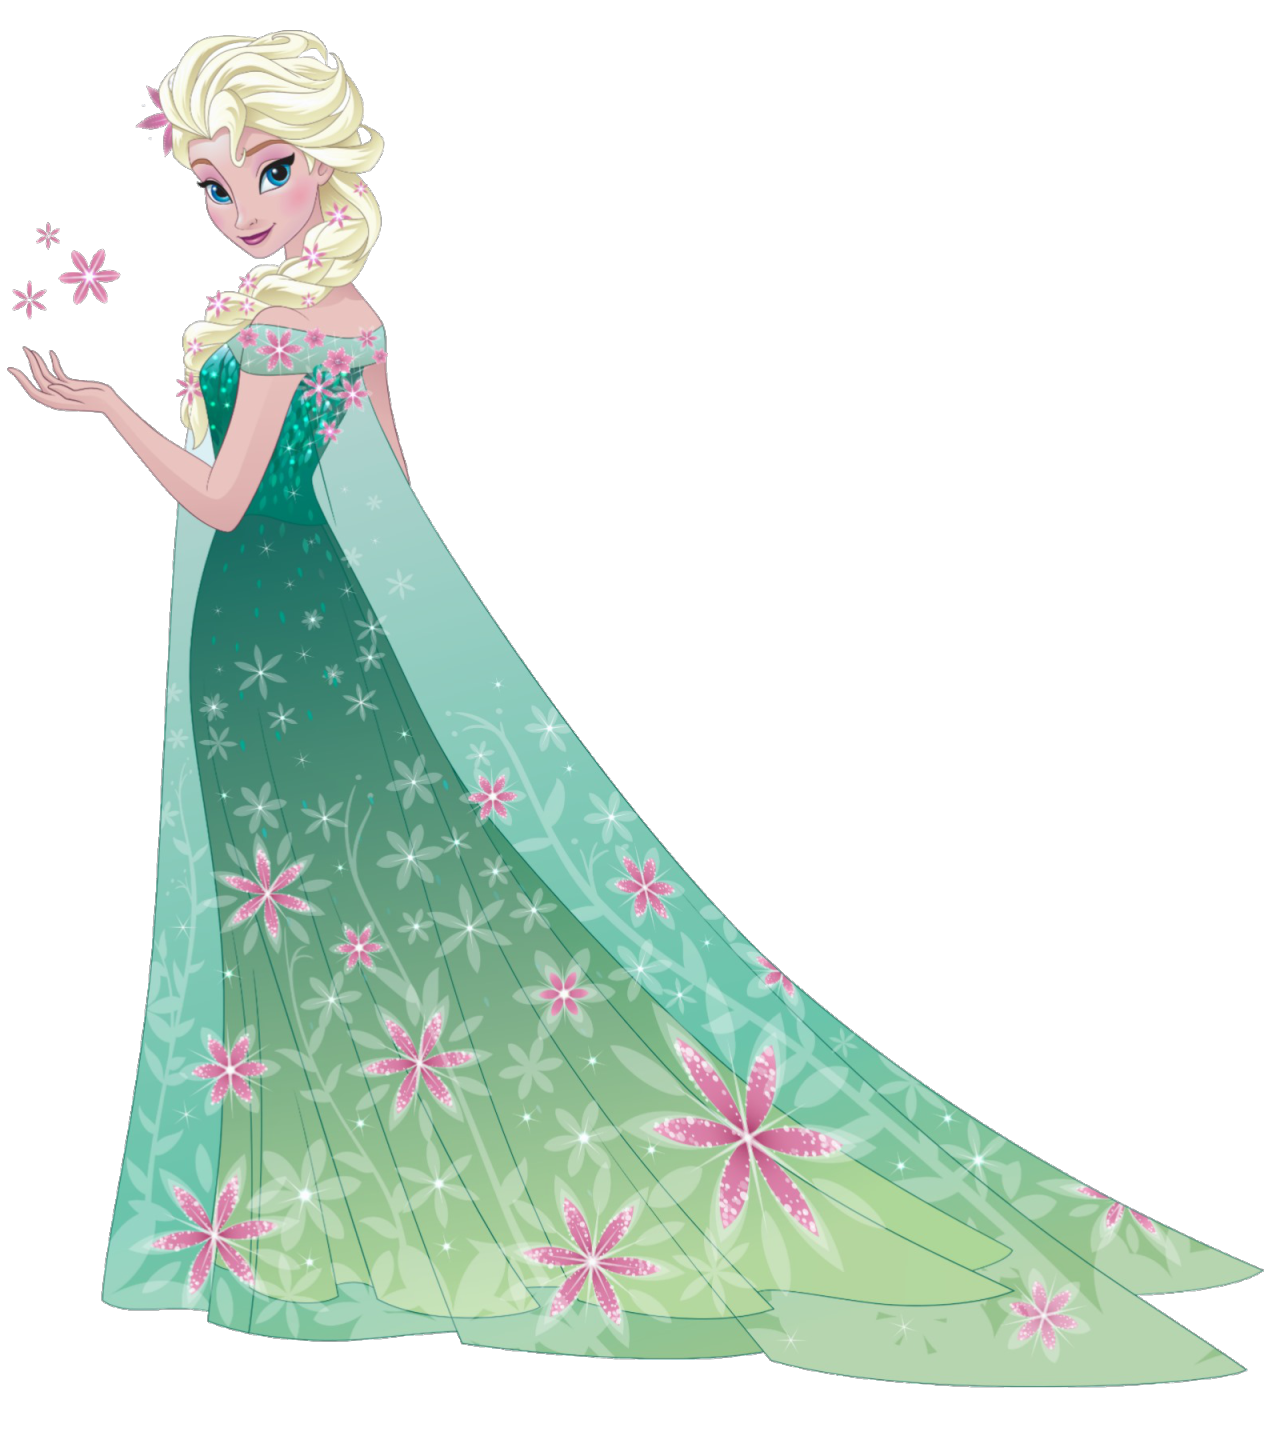 Frozen fever png. Images elsa hd wallpaper